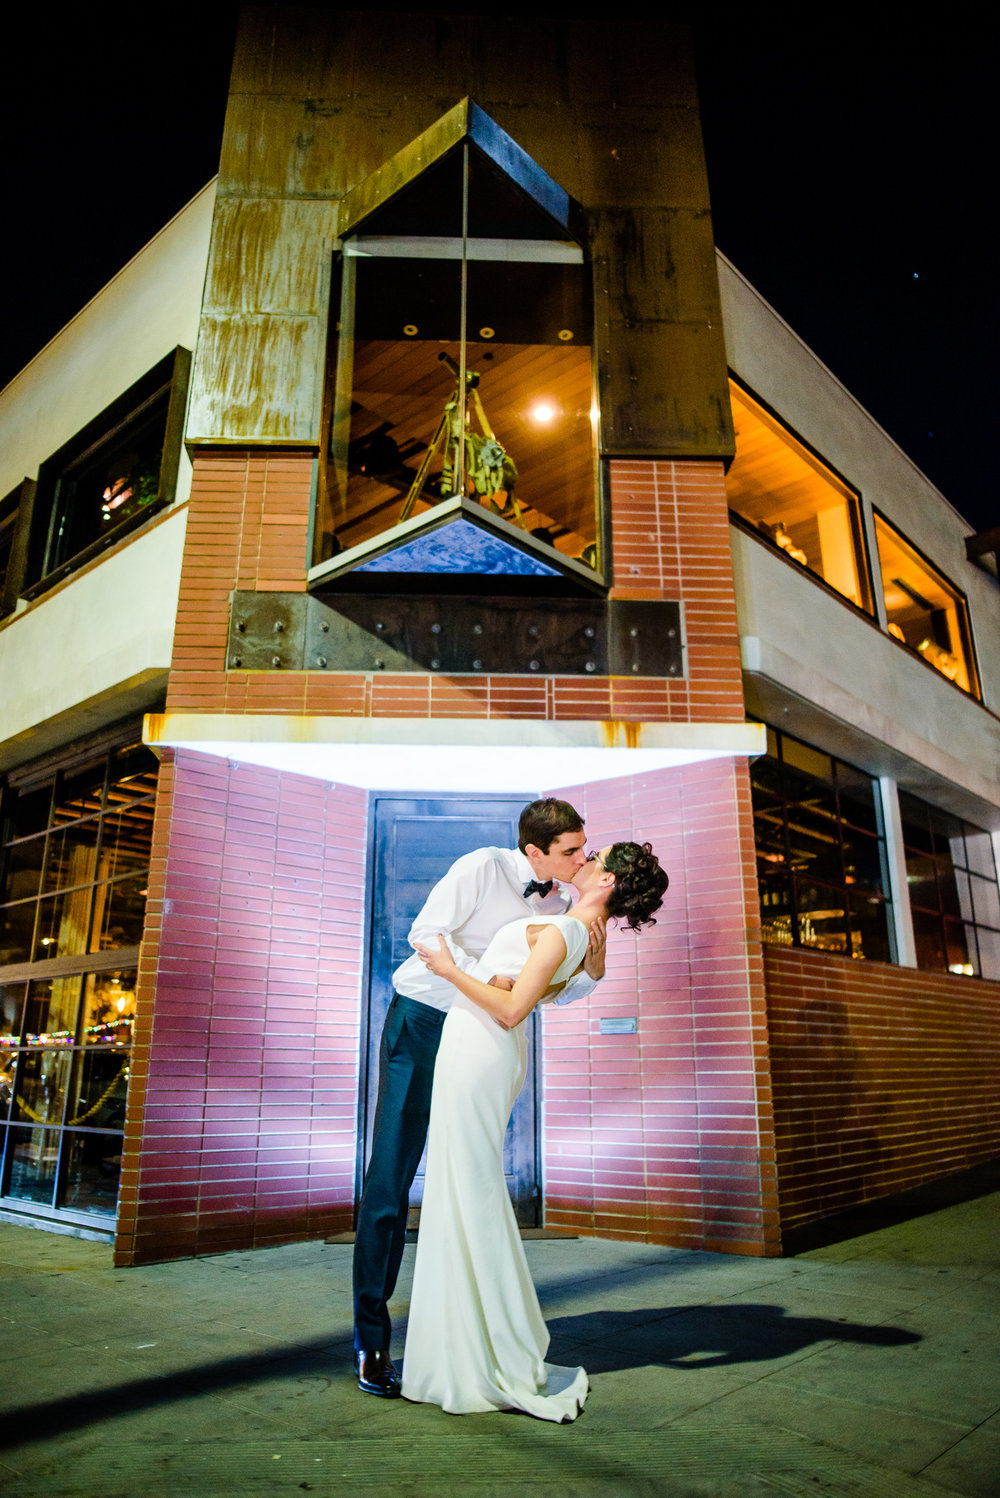 12.29.17 - Michelle and Tommaso Wedding - San Diego Courthouse -  Paul Douda Photography - 306.jpg